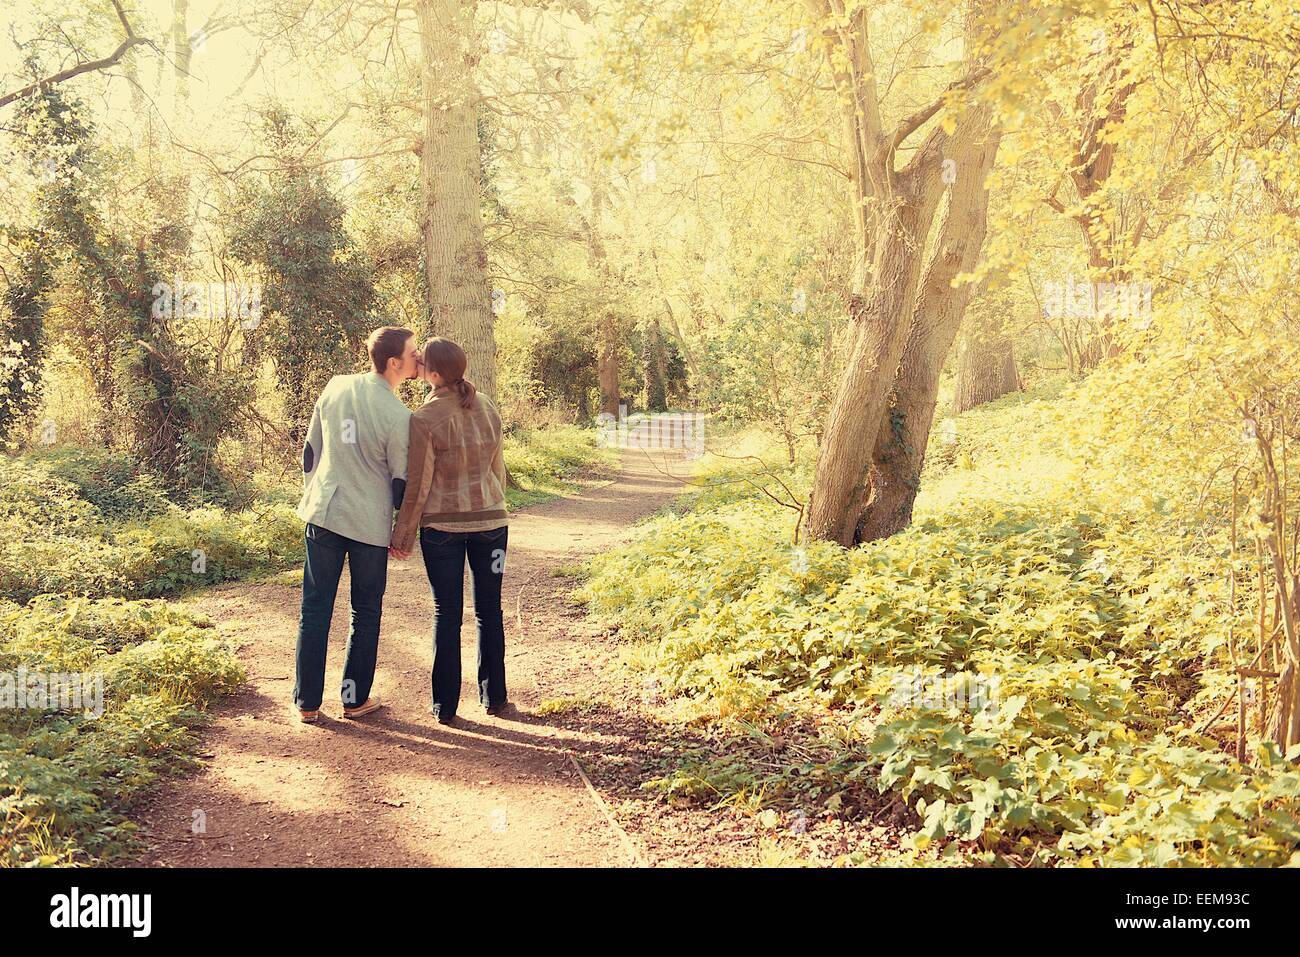 Lovers walking in the park - Stock Image